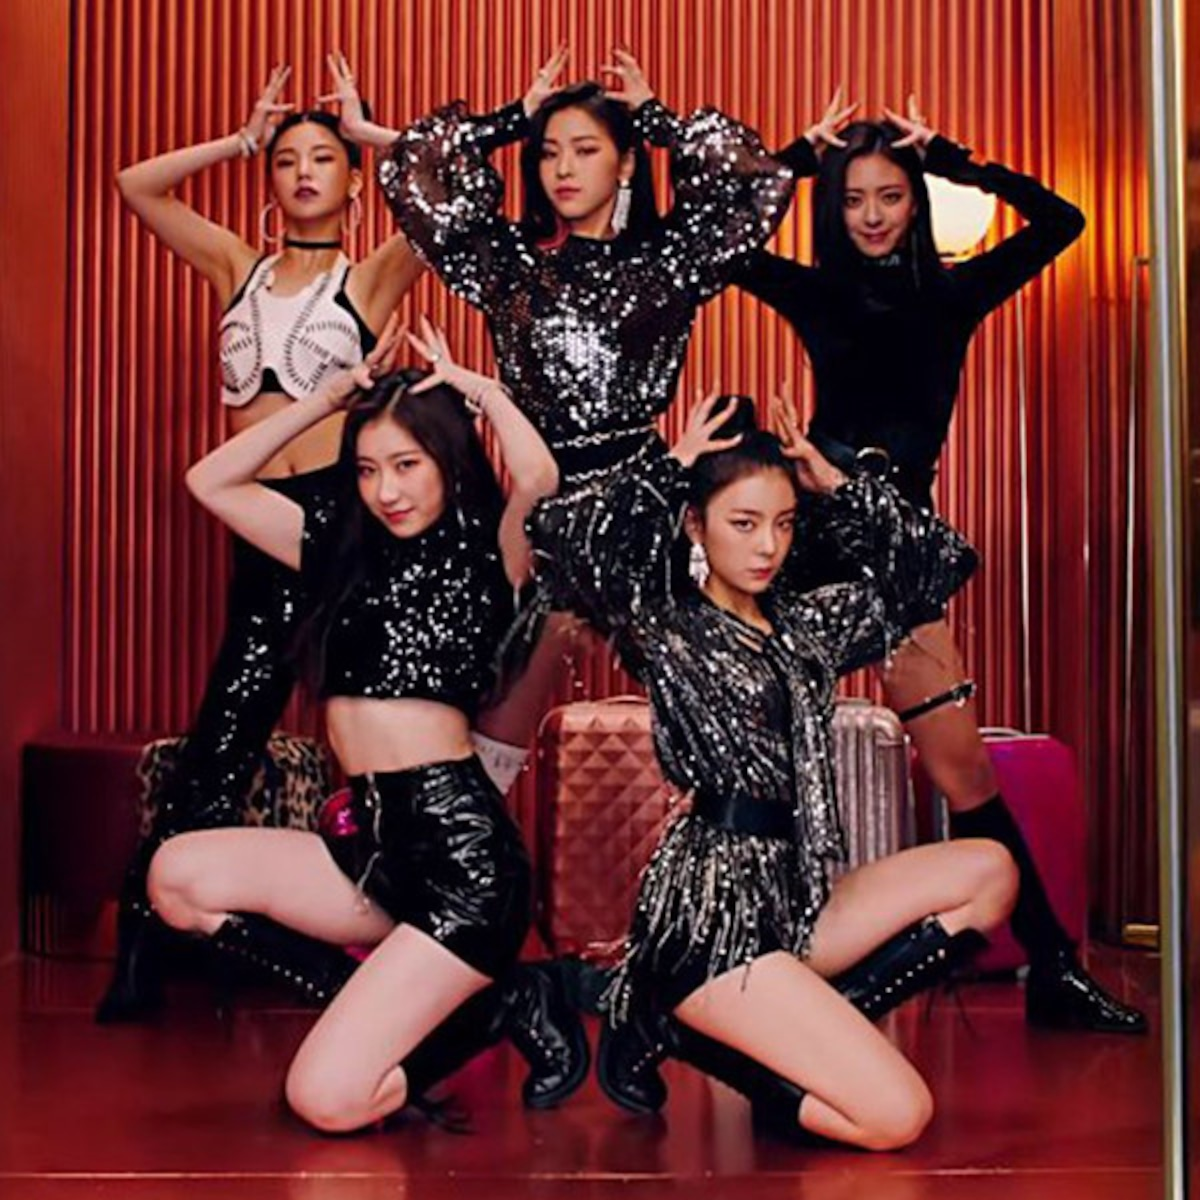 Get To Know The 5 Members Of South Korean Girl Group Itzy